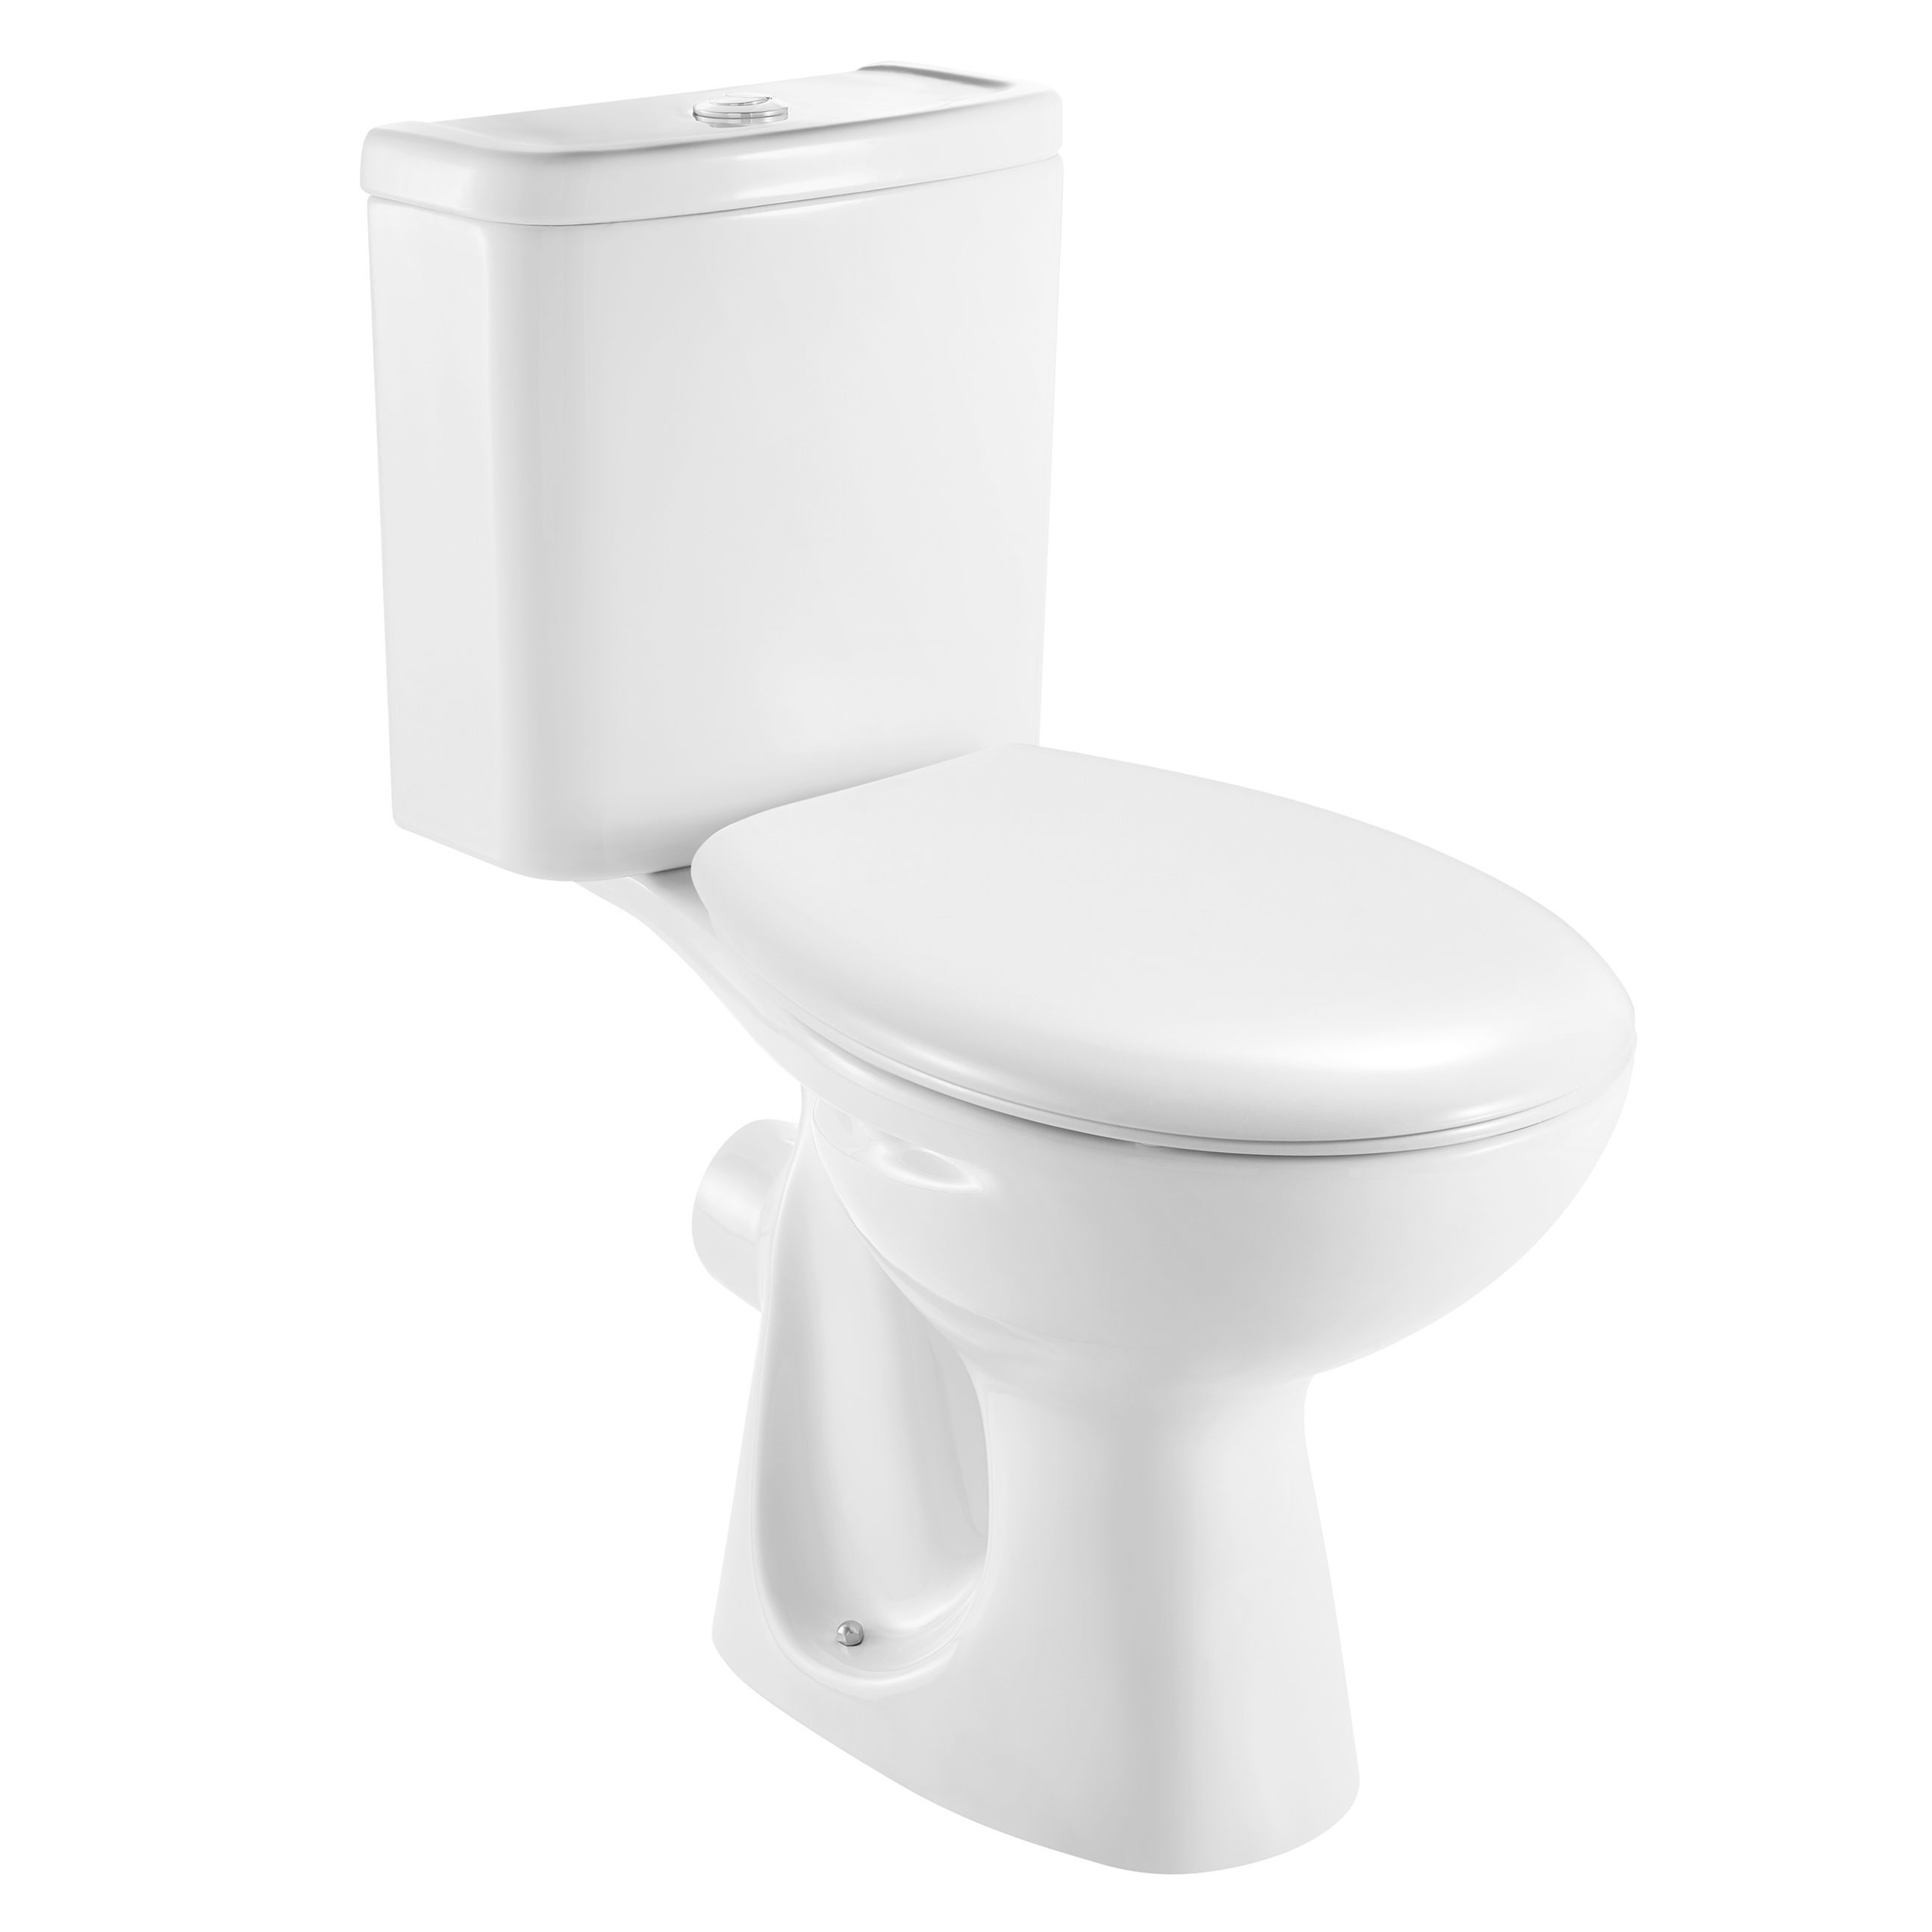 Incredible Plumbsure Truro Contemporary Close Coupled Toilet With Machost Co Dining Chair Design Ideas Machostcouk